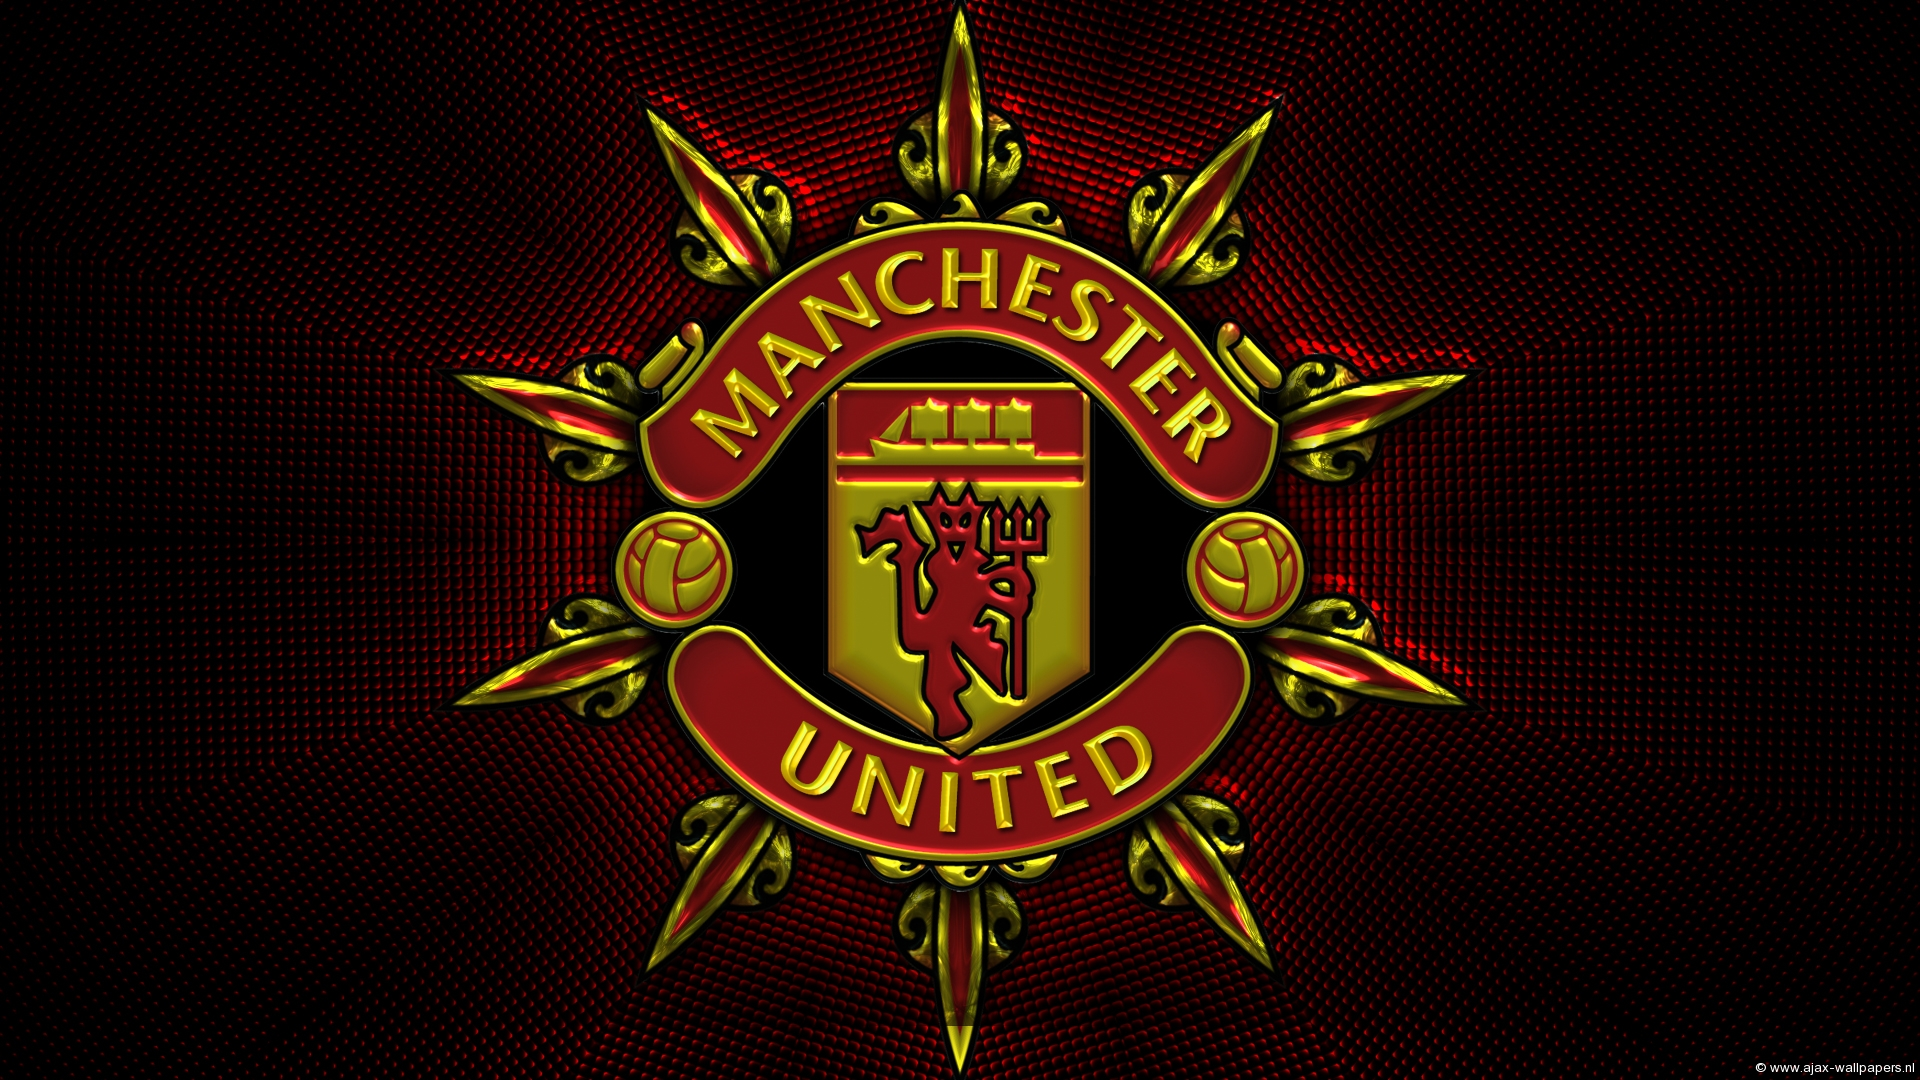 Download man united pictures Affinity Photo - Professional image editing software for